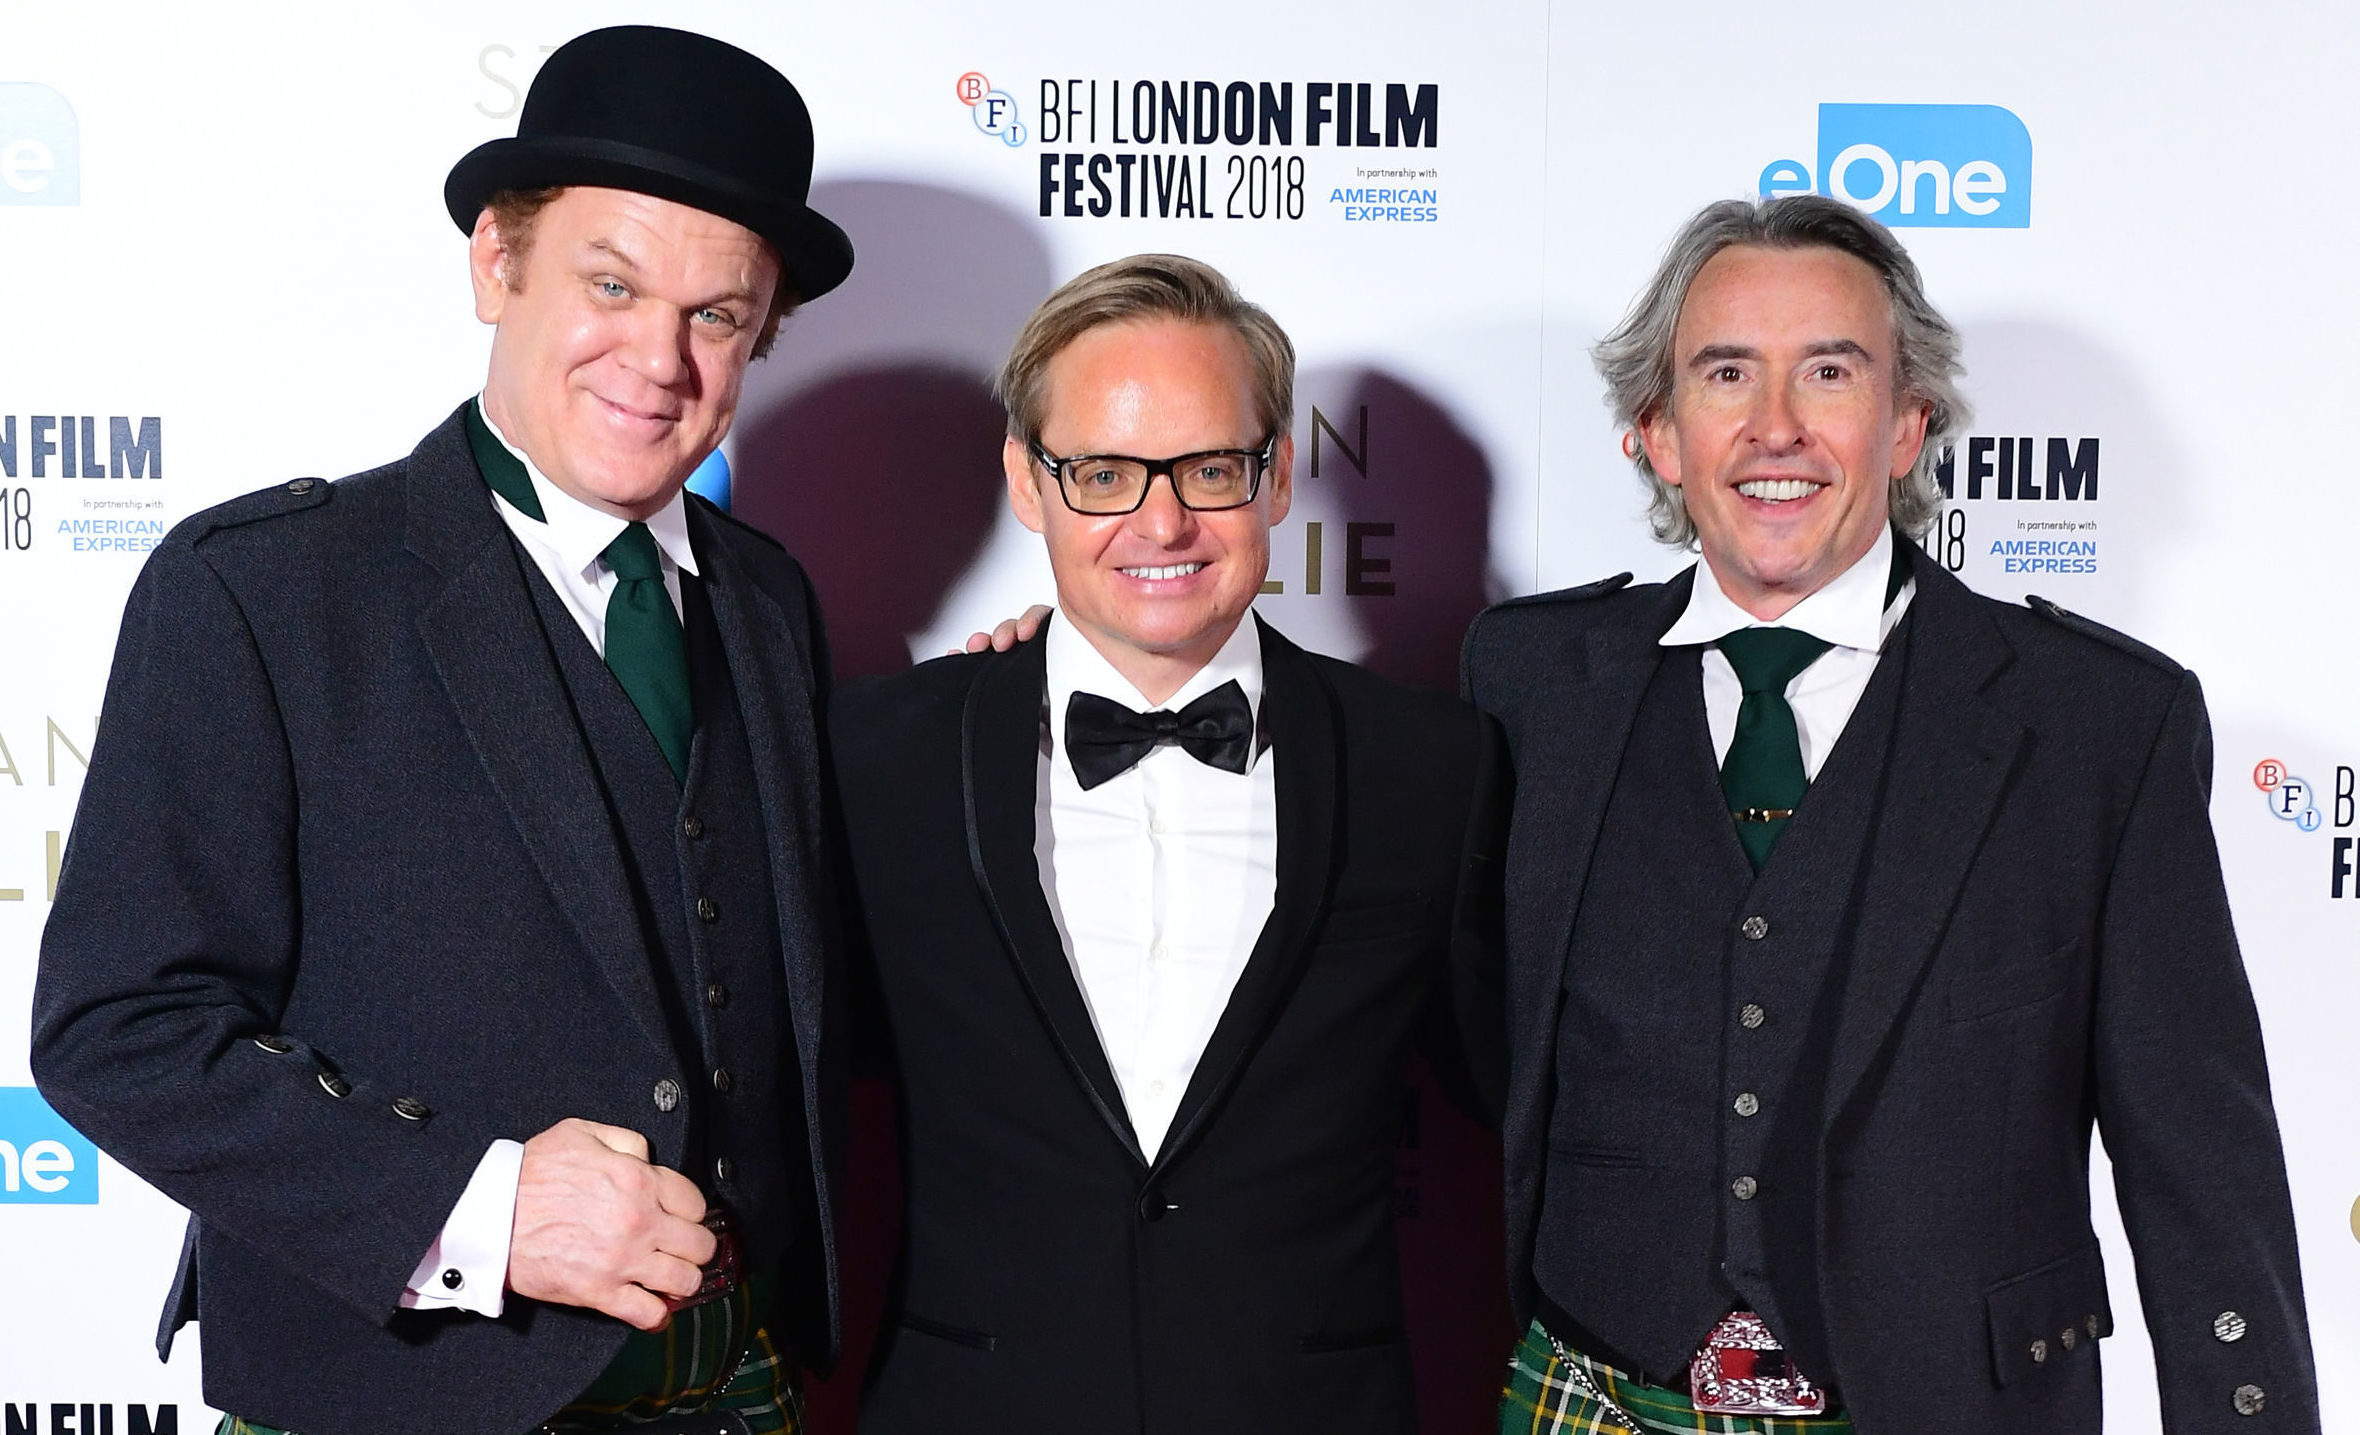 John C. Reilly, Jon S.Baird and Steve Coogan on the red carpet (PA)